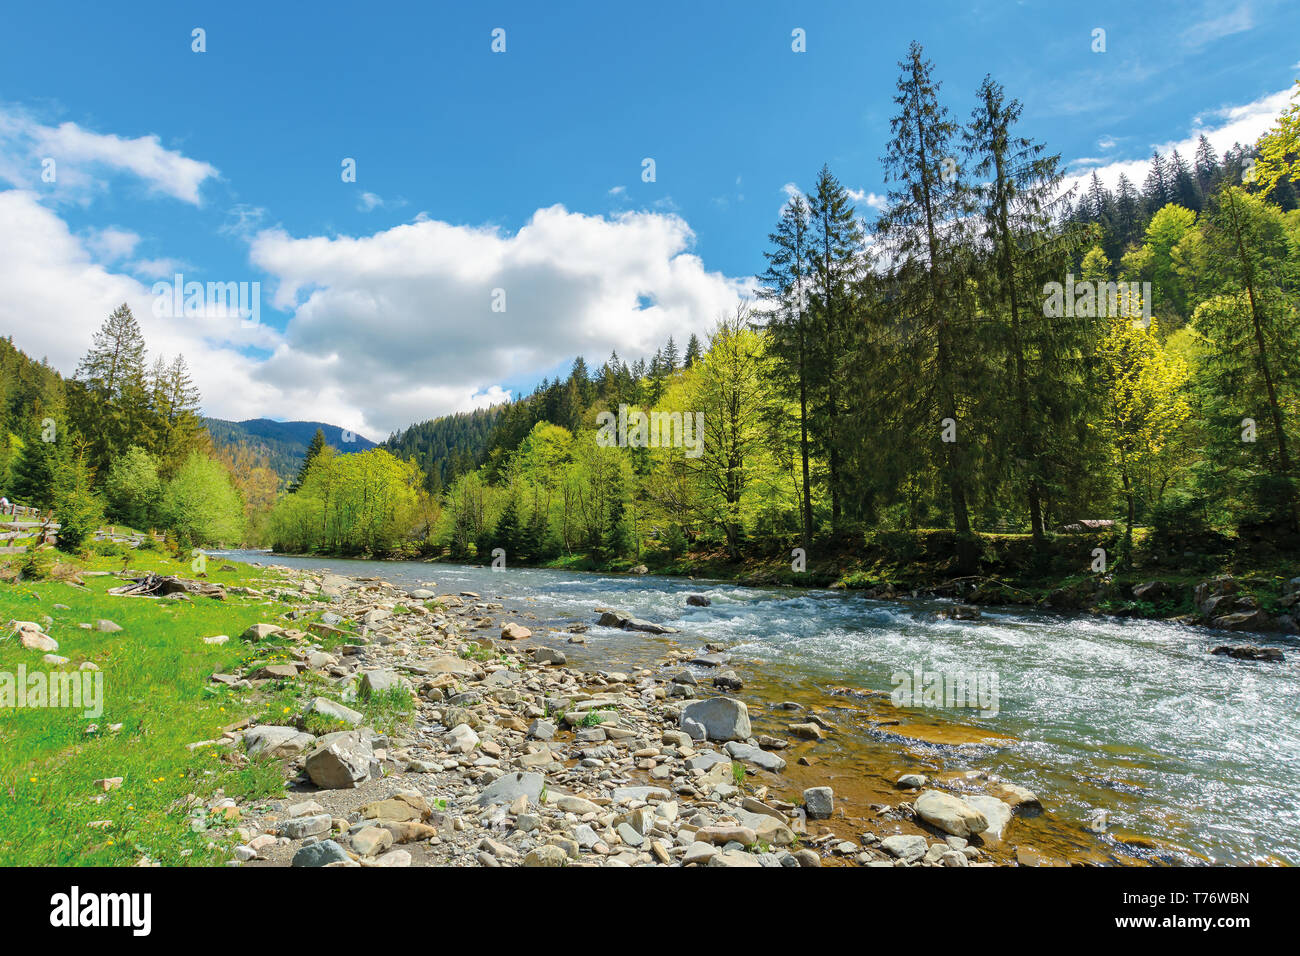 River flows among of a green forest at the foot of the mountain. picturesque nature of Carpathians  on a serene summer day under blue sky - Stock Image